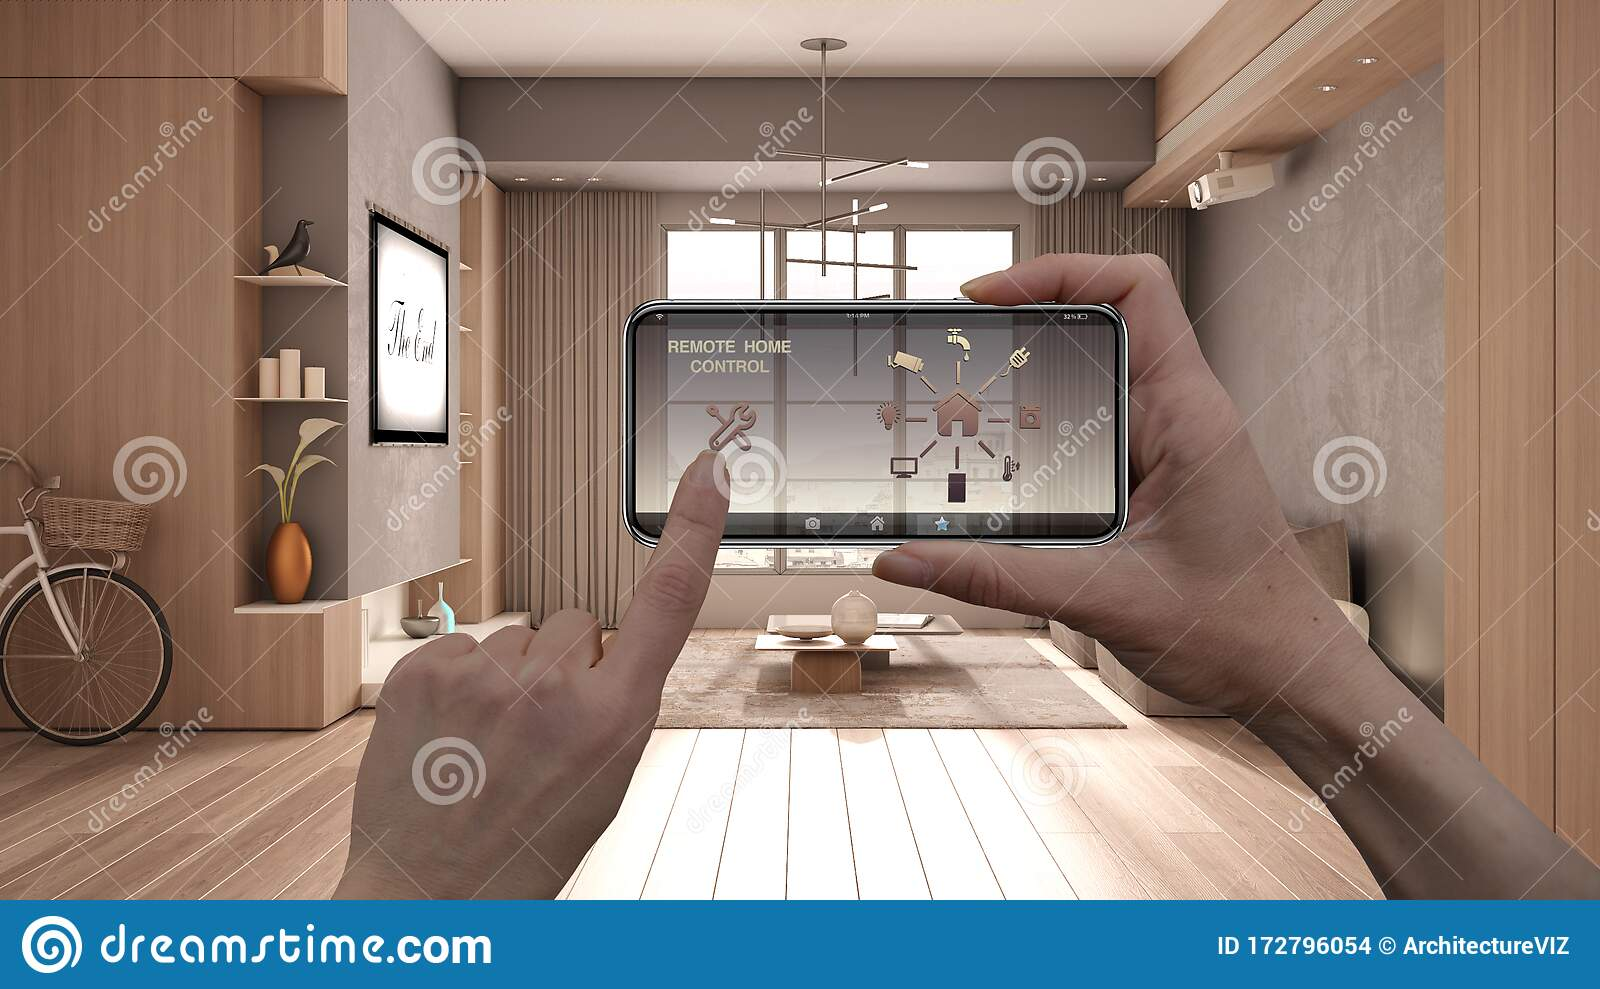 Remote Home Control System On A Digital Smart Phone Tablet ...